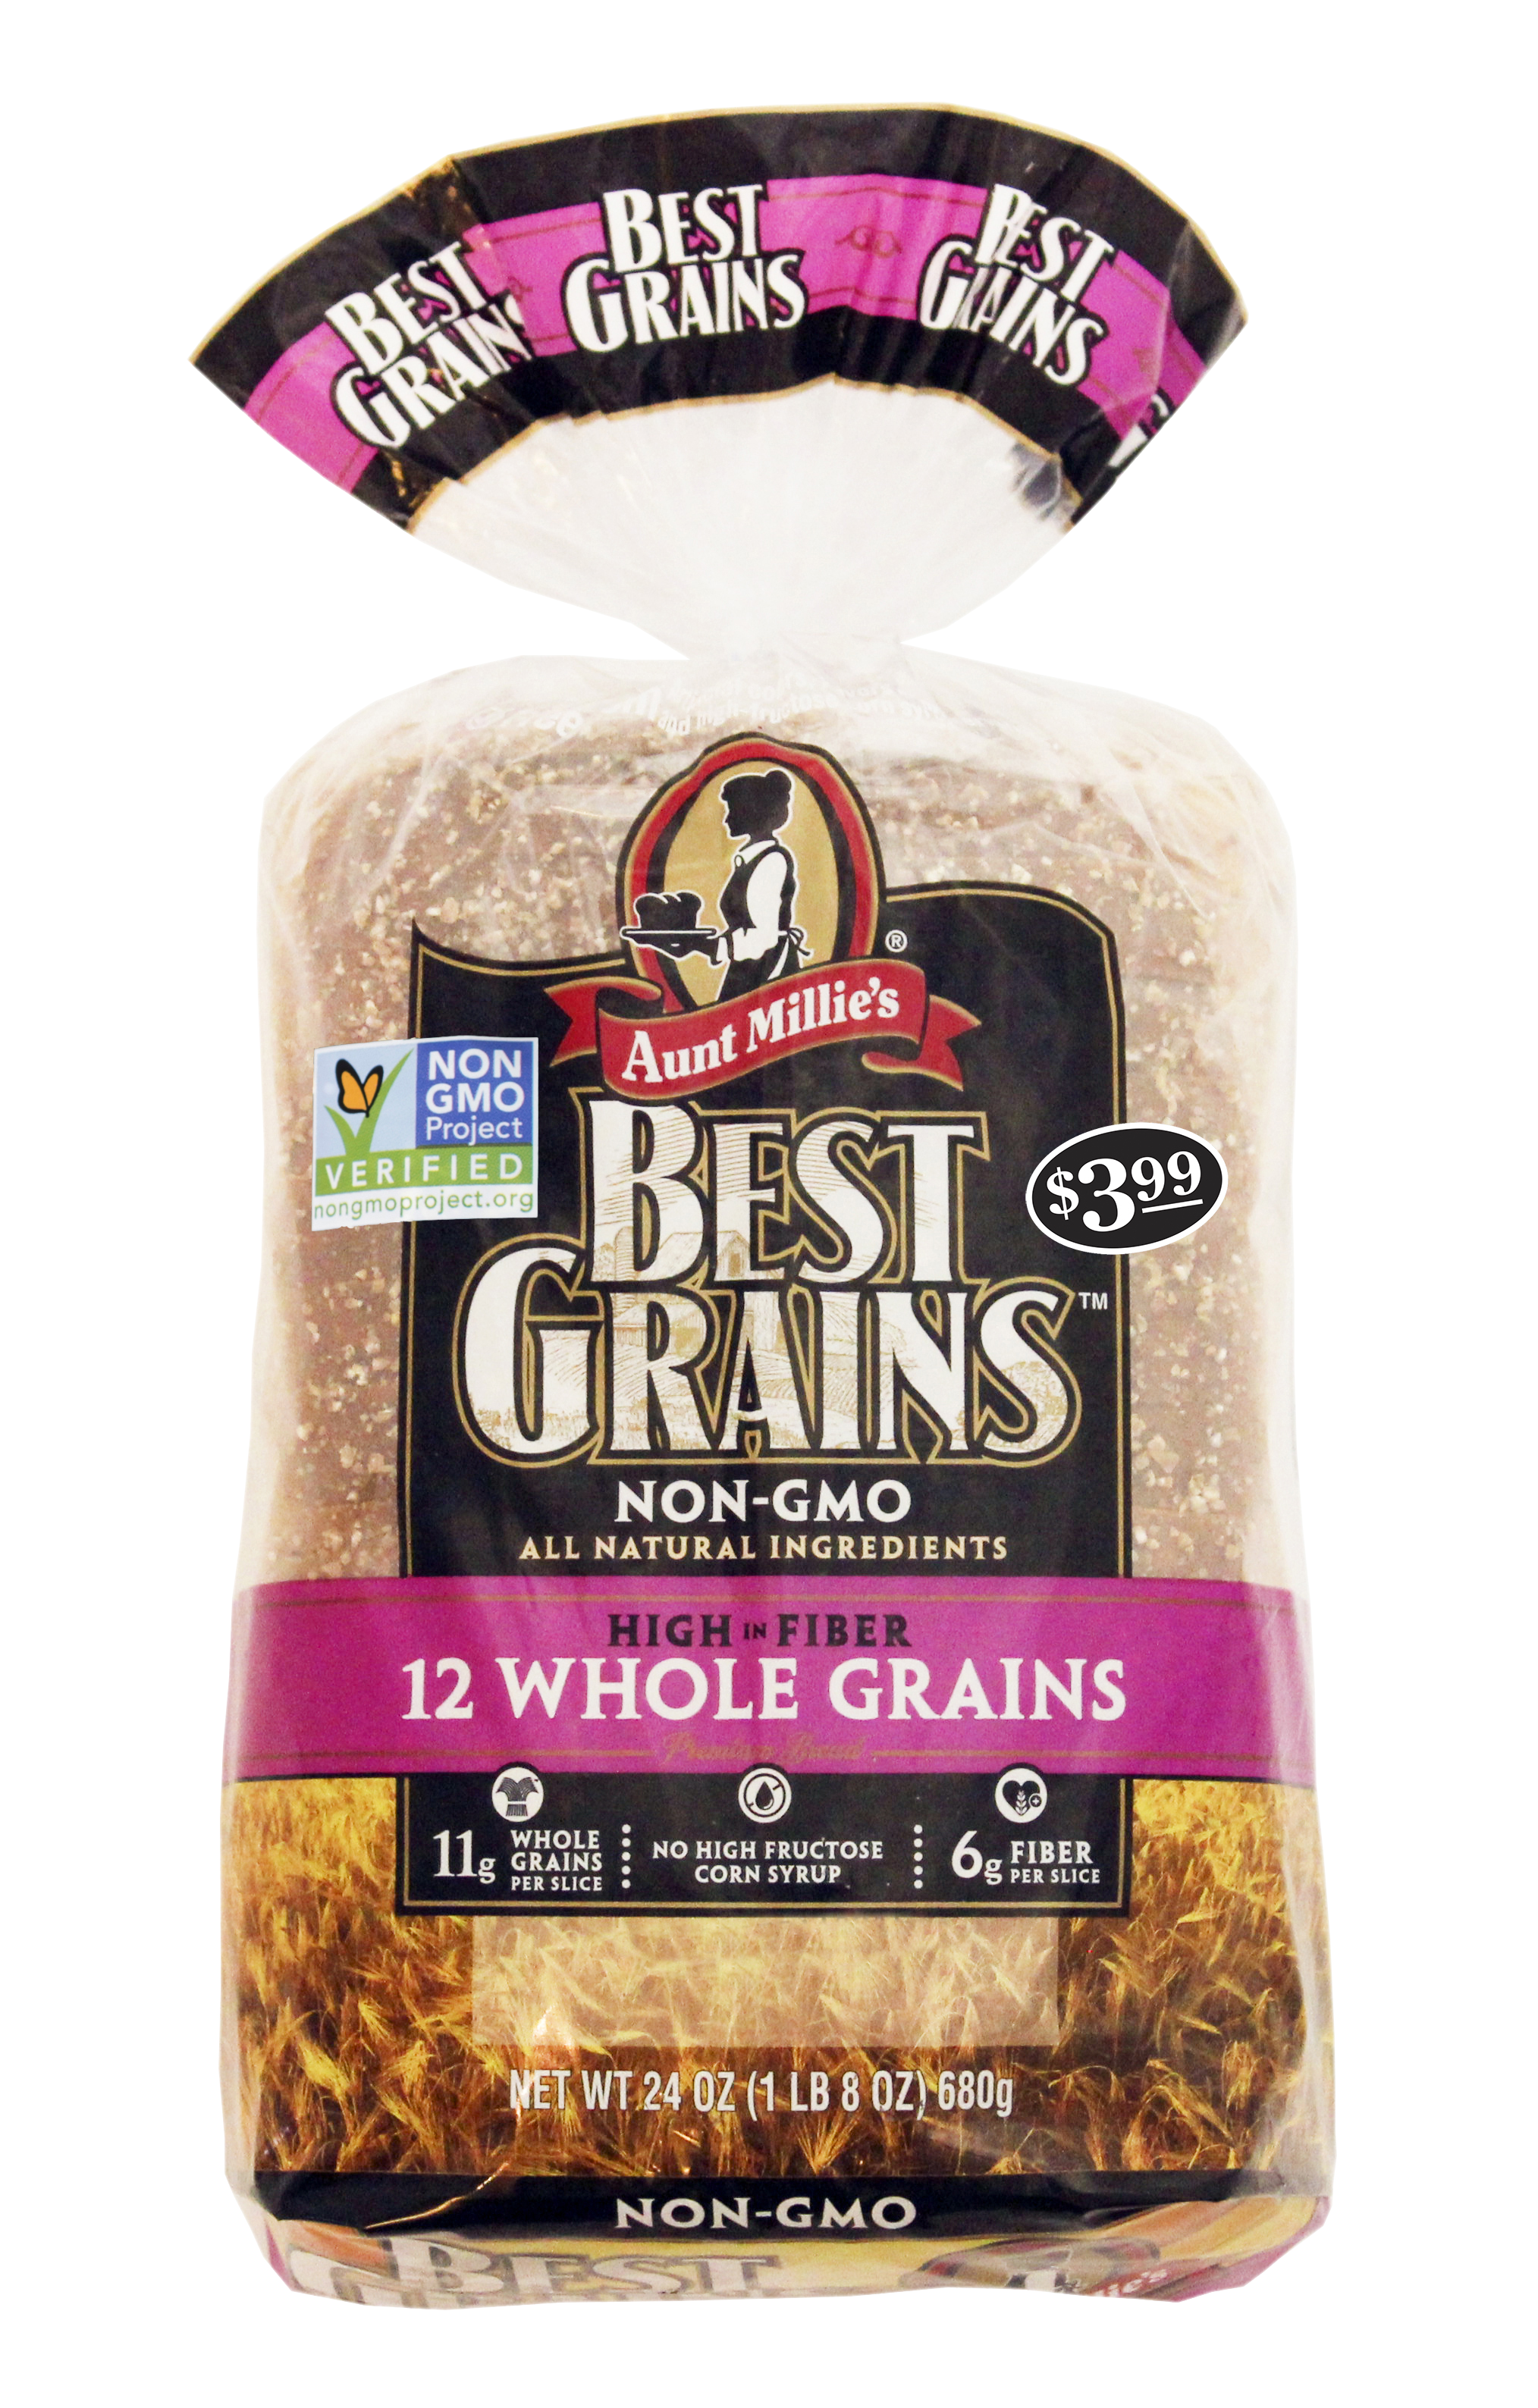 Fiber for life, plus more.  - Aunt Millie's Best Grain's breads are truly the best. Each slice contains: 100 calories, 0g trans and saturated fat, reduced sodium, 10g whole grains, no high fructose corn syrup, and 6g of fiber.